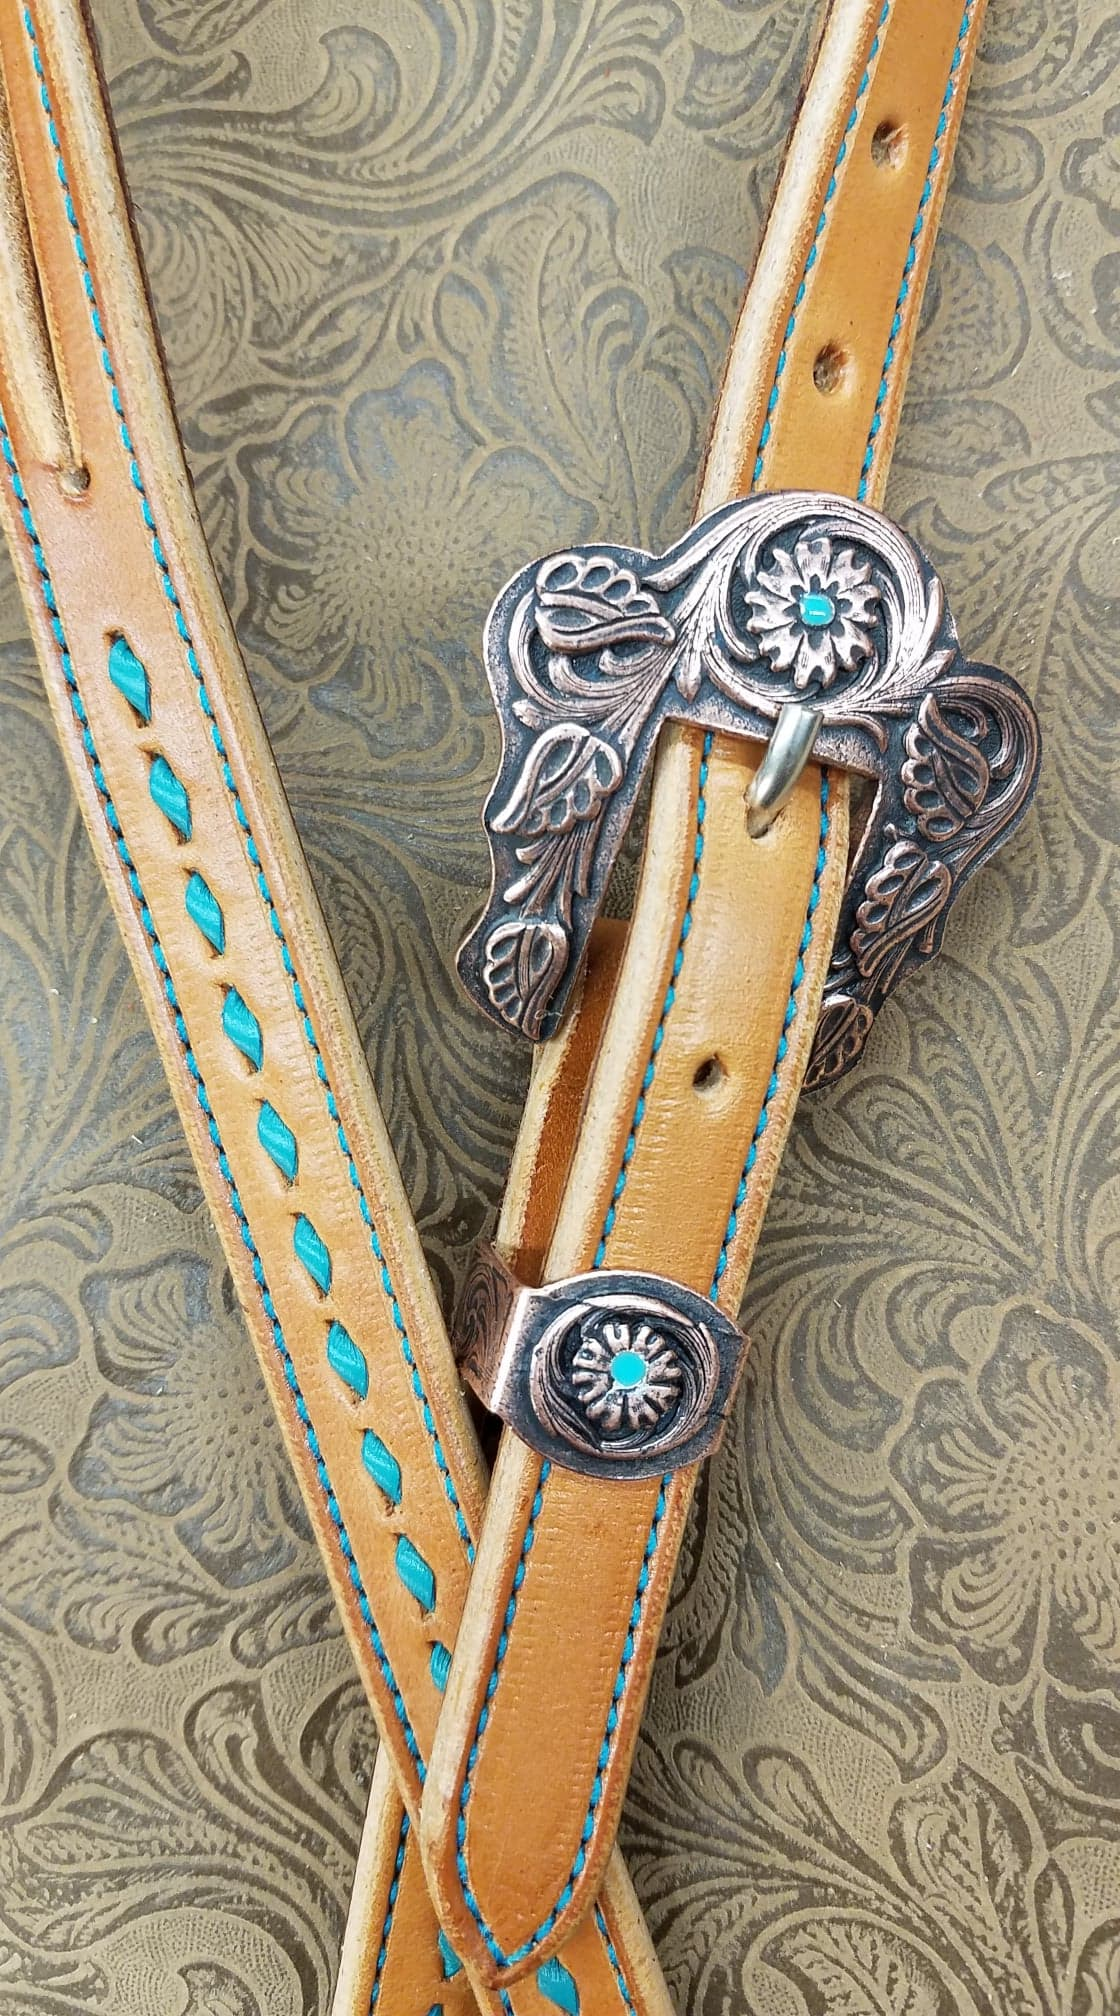 The Copper Queen Headstall